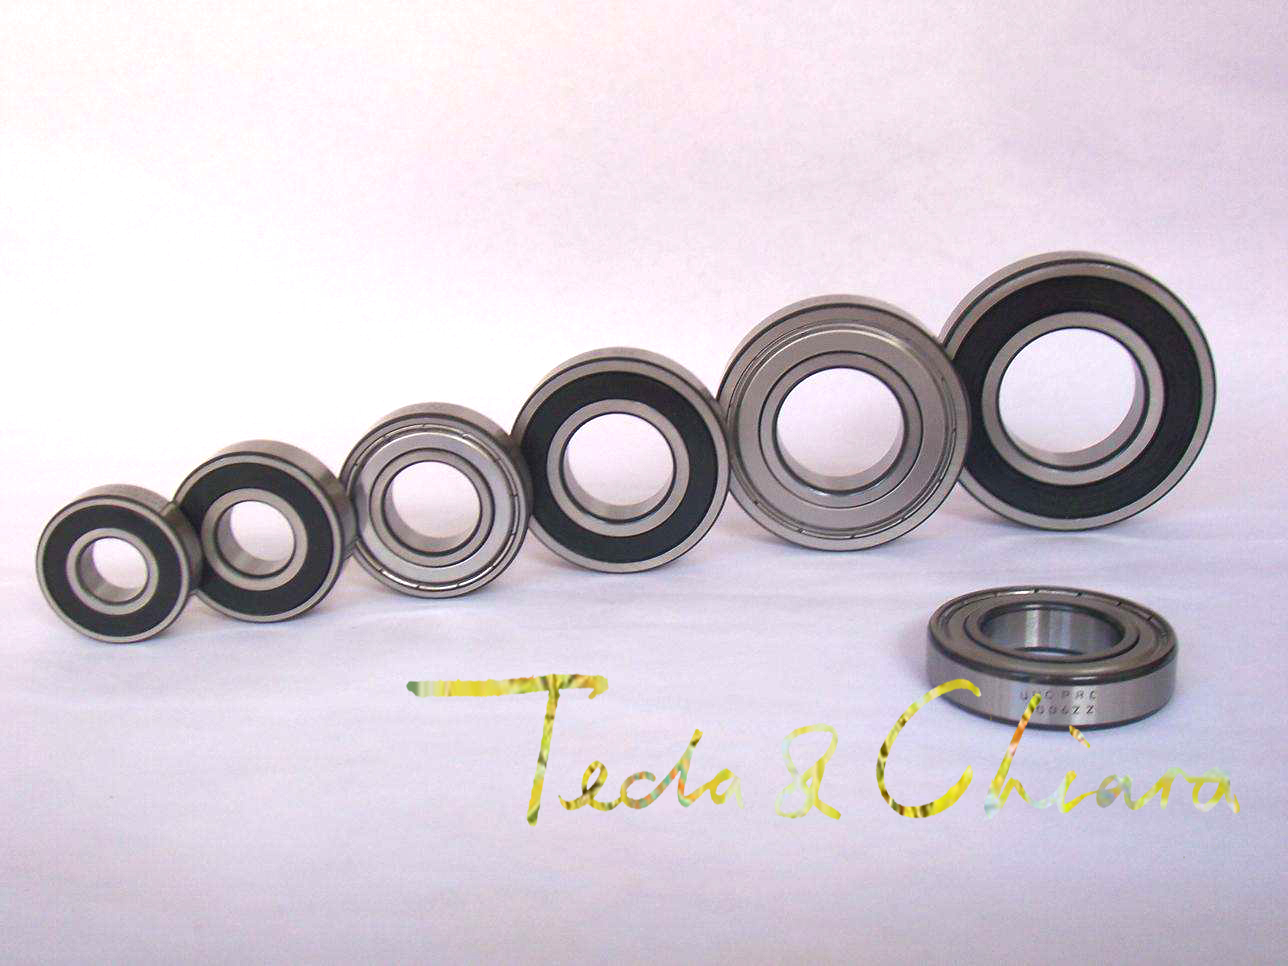 10Pcs MR148 MR148ZZ MR148RS MR148-2Z MR148Z MR148-2RS ZZ RS RZ 2RZ L-1480ZZ Deep Groove Ball Bearings 8 x 14 x 4mm High Quality 604 604zz 604rs 604 2z 604z 604 2rs zz rs rz 2rz deep groove ball bearings 4 x 12 x 4mm high quality